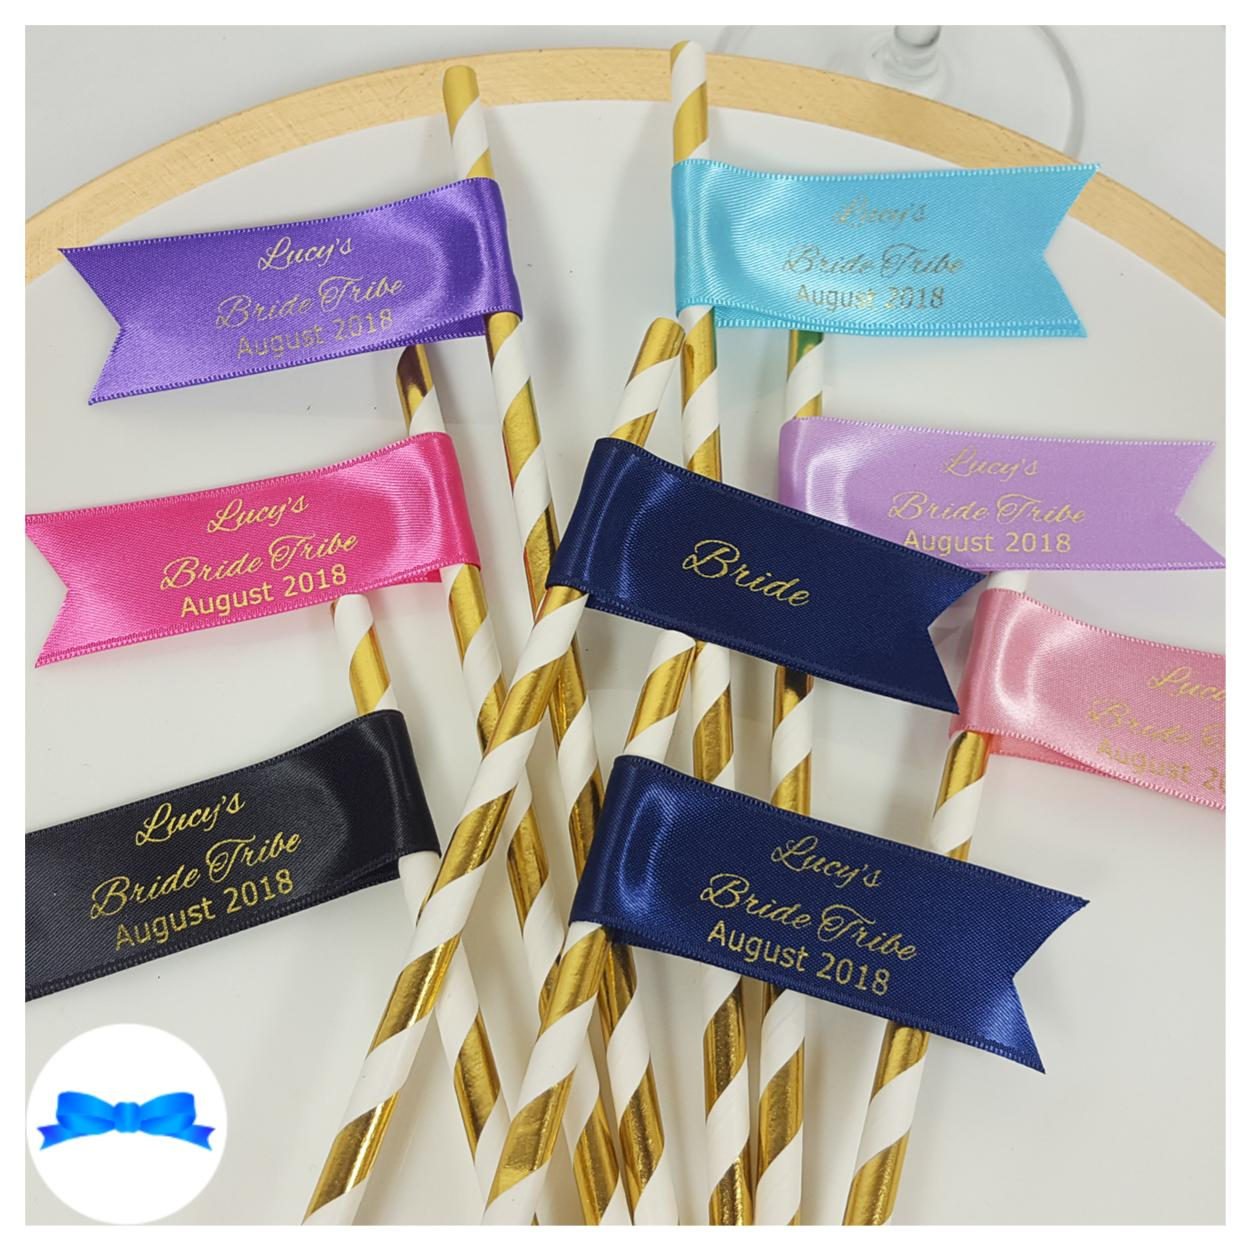 Hen party personalised straws plus free bride straw